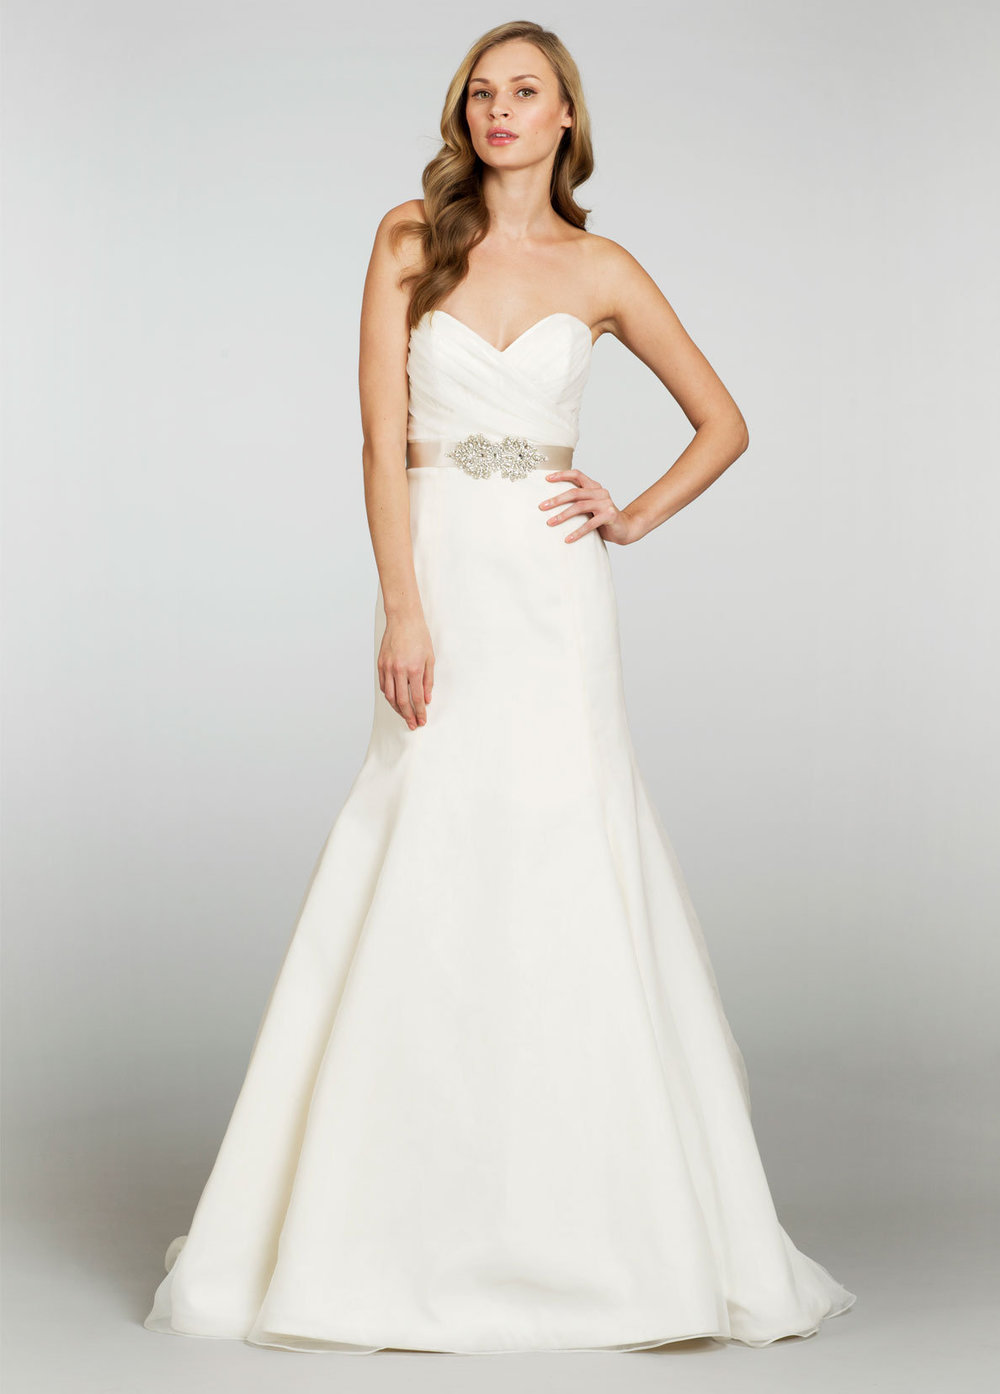 jim-hjelm-blush-bridal-strapless-gown-lace-organza-sweetheart-neck-a-line-belt-natural-waist-chapel-train-1303_lg_lb.jpg